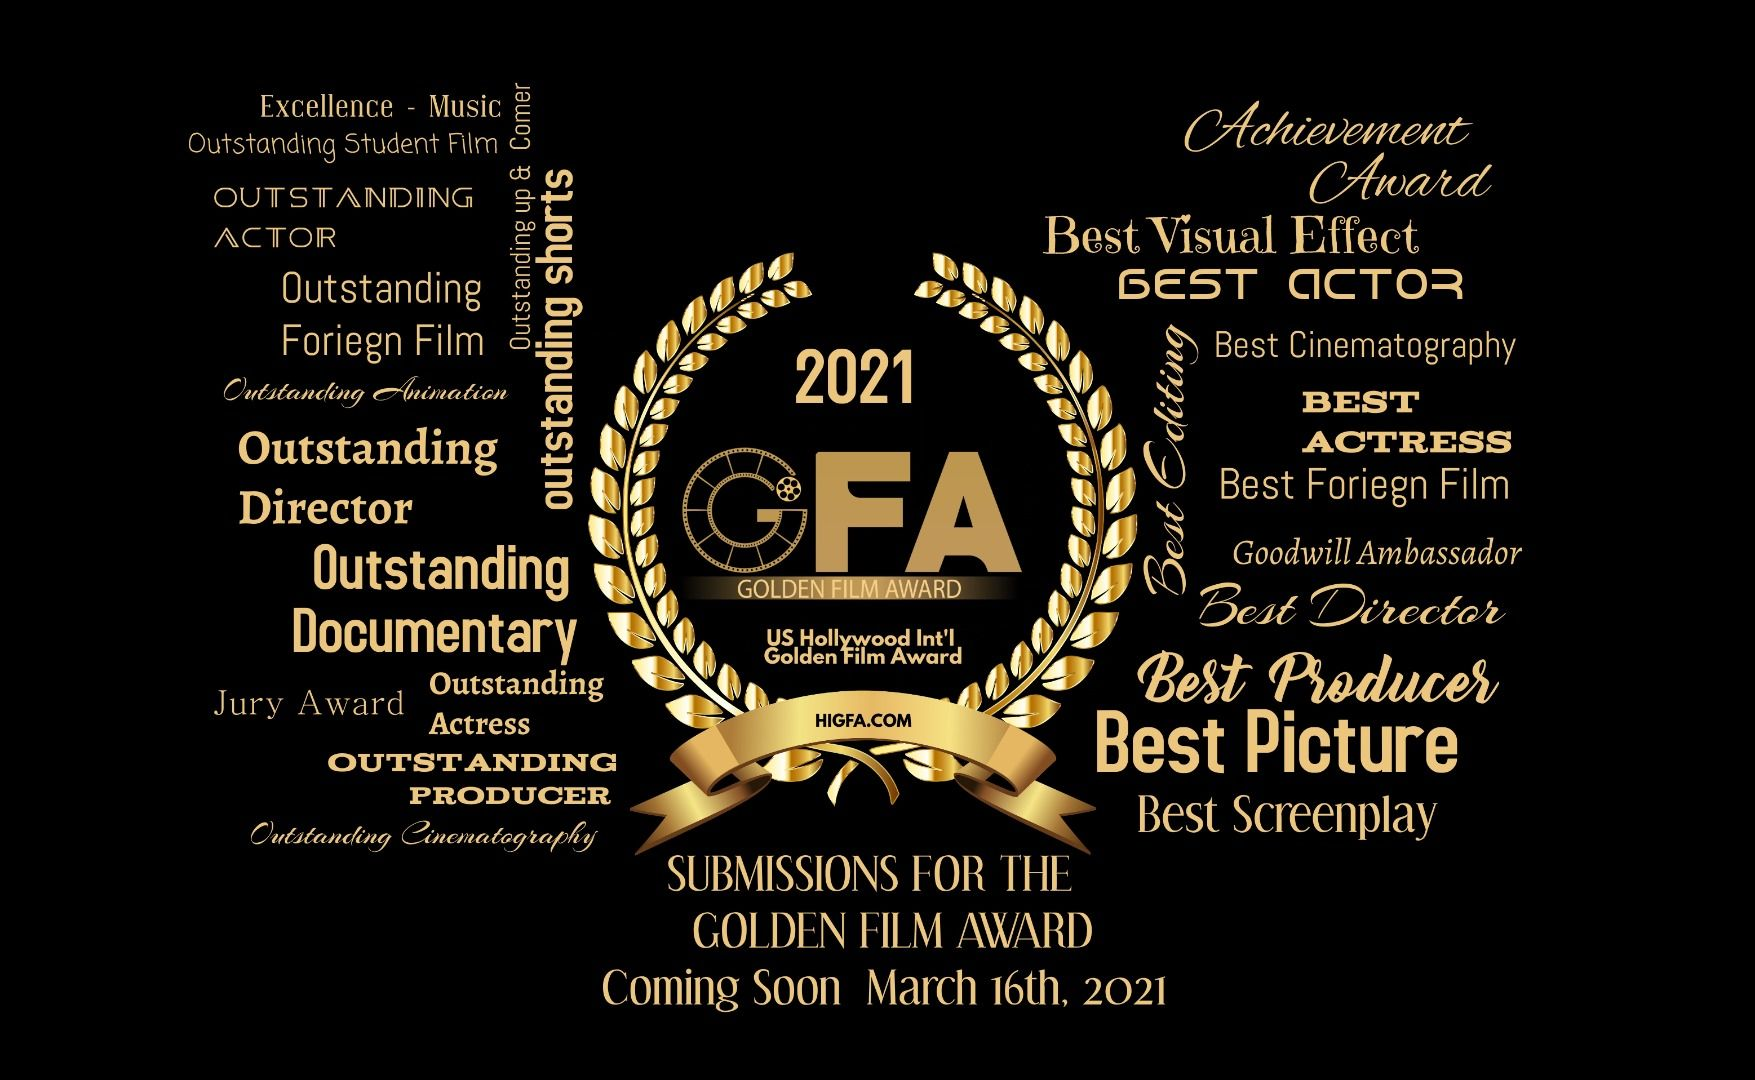 2021 Golden Film Award Start Accepting Submissions In Coming March...